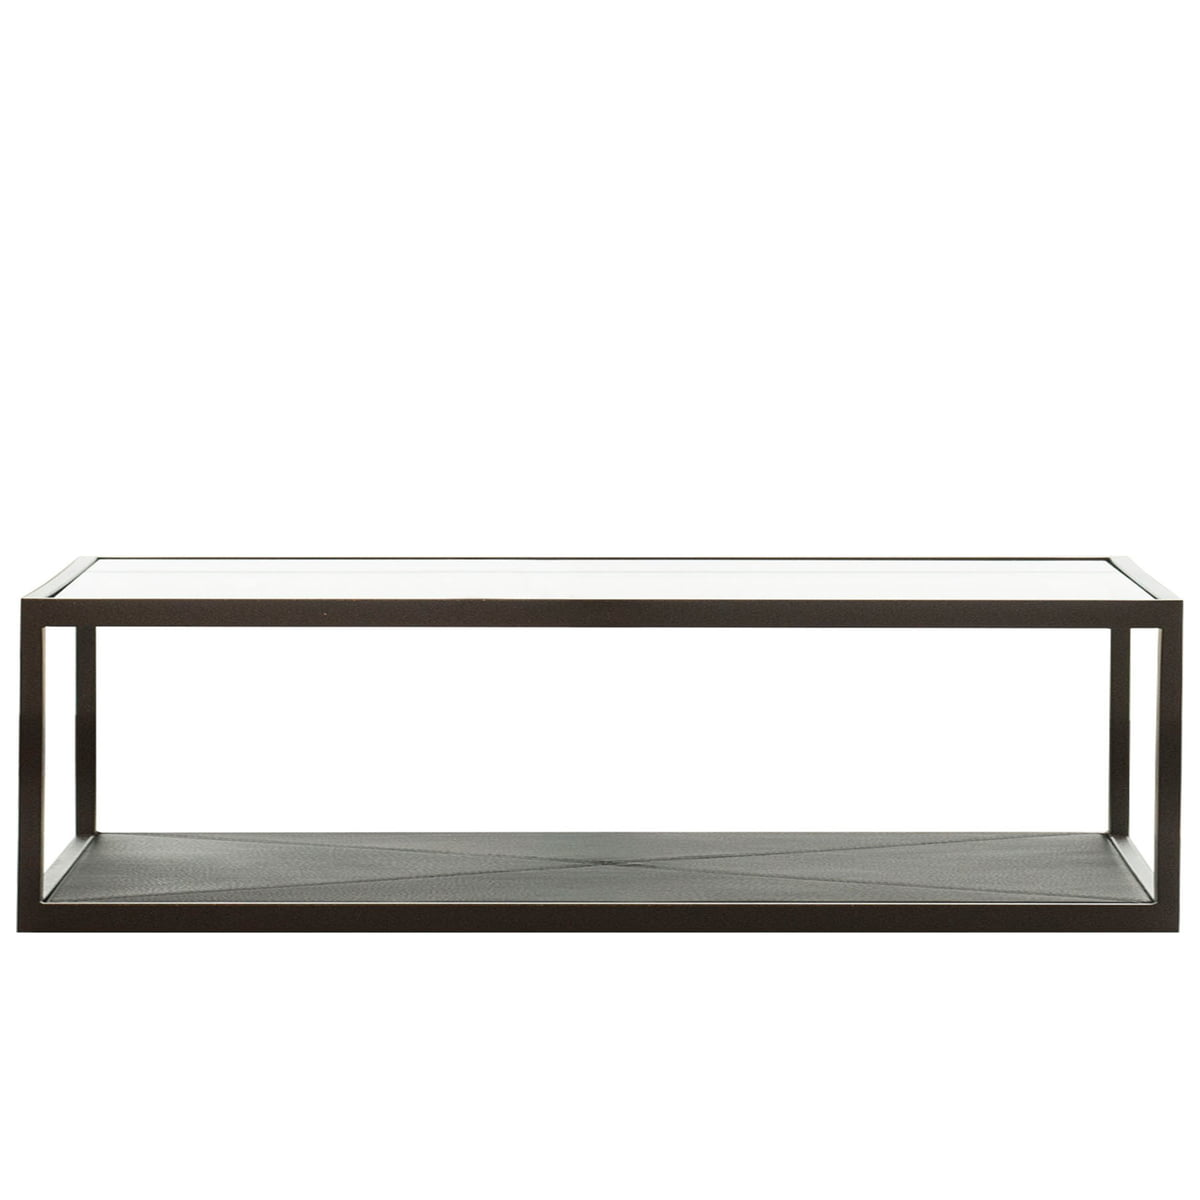 Monaco Coffee Table 100 X 50 Cm By Röshults In Black With Black Leather